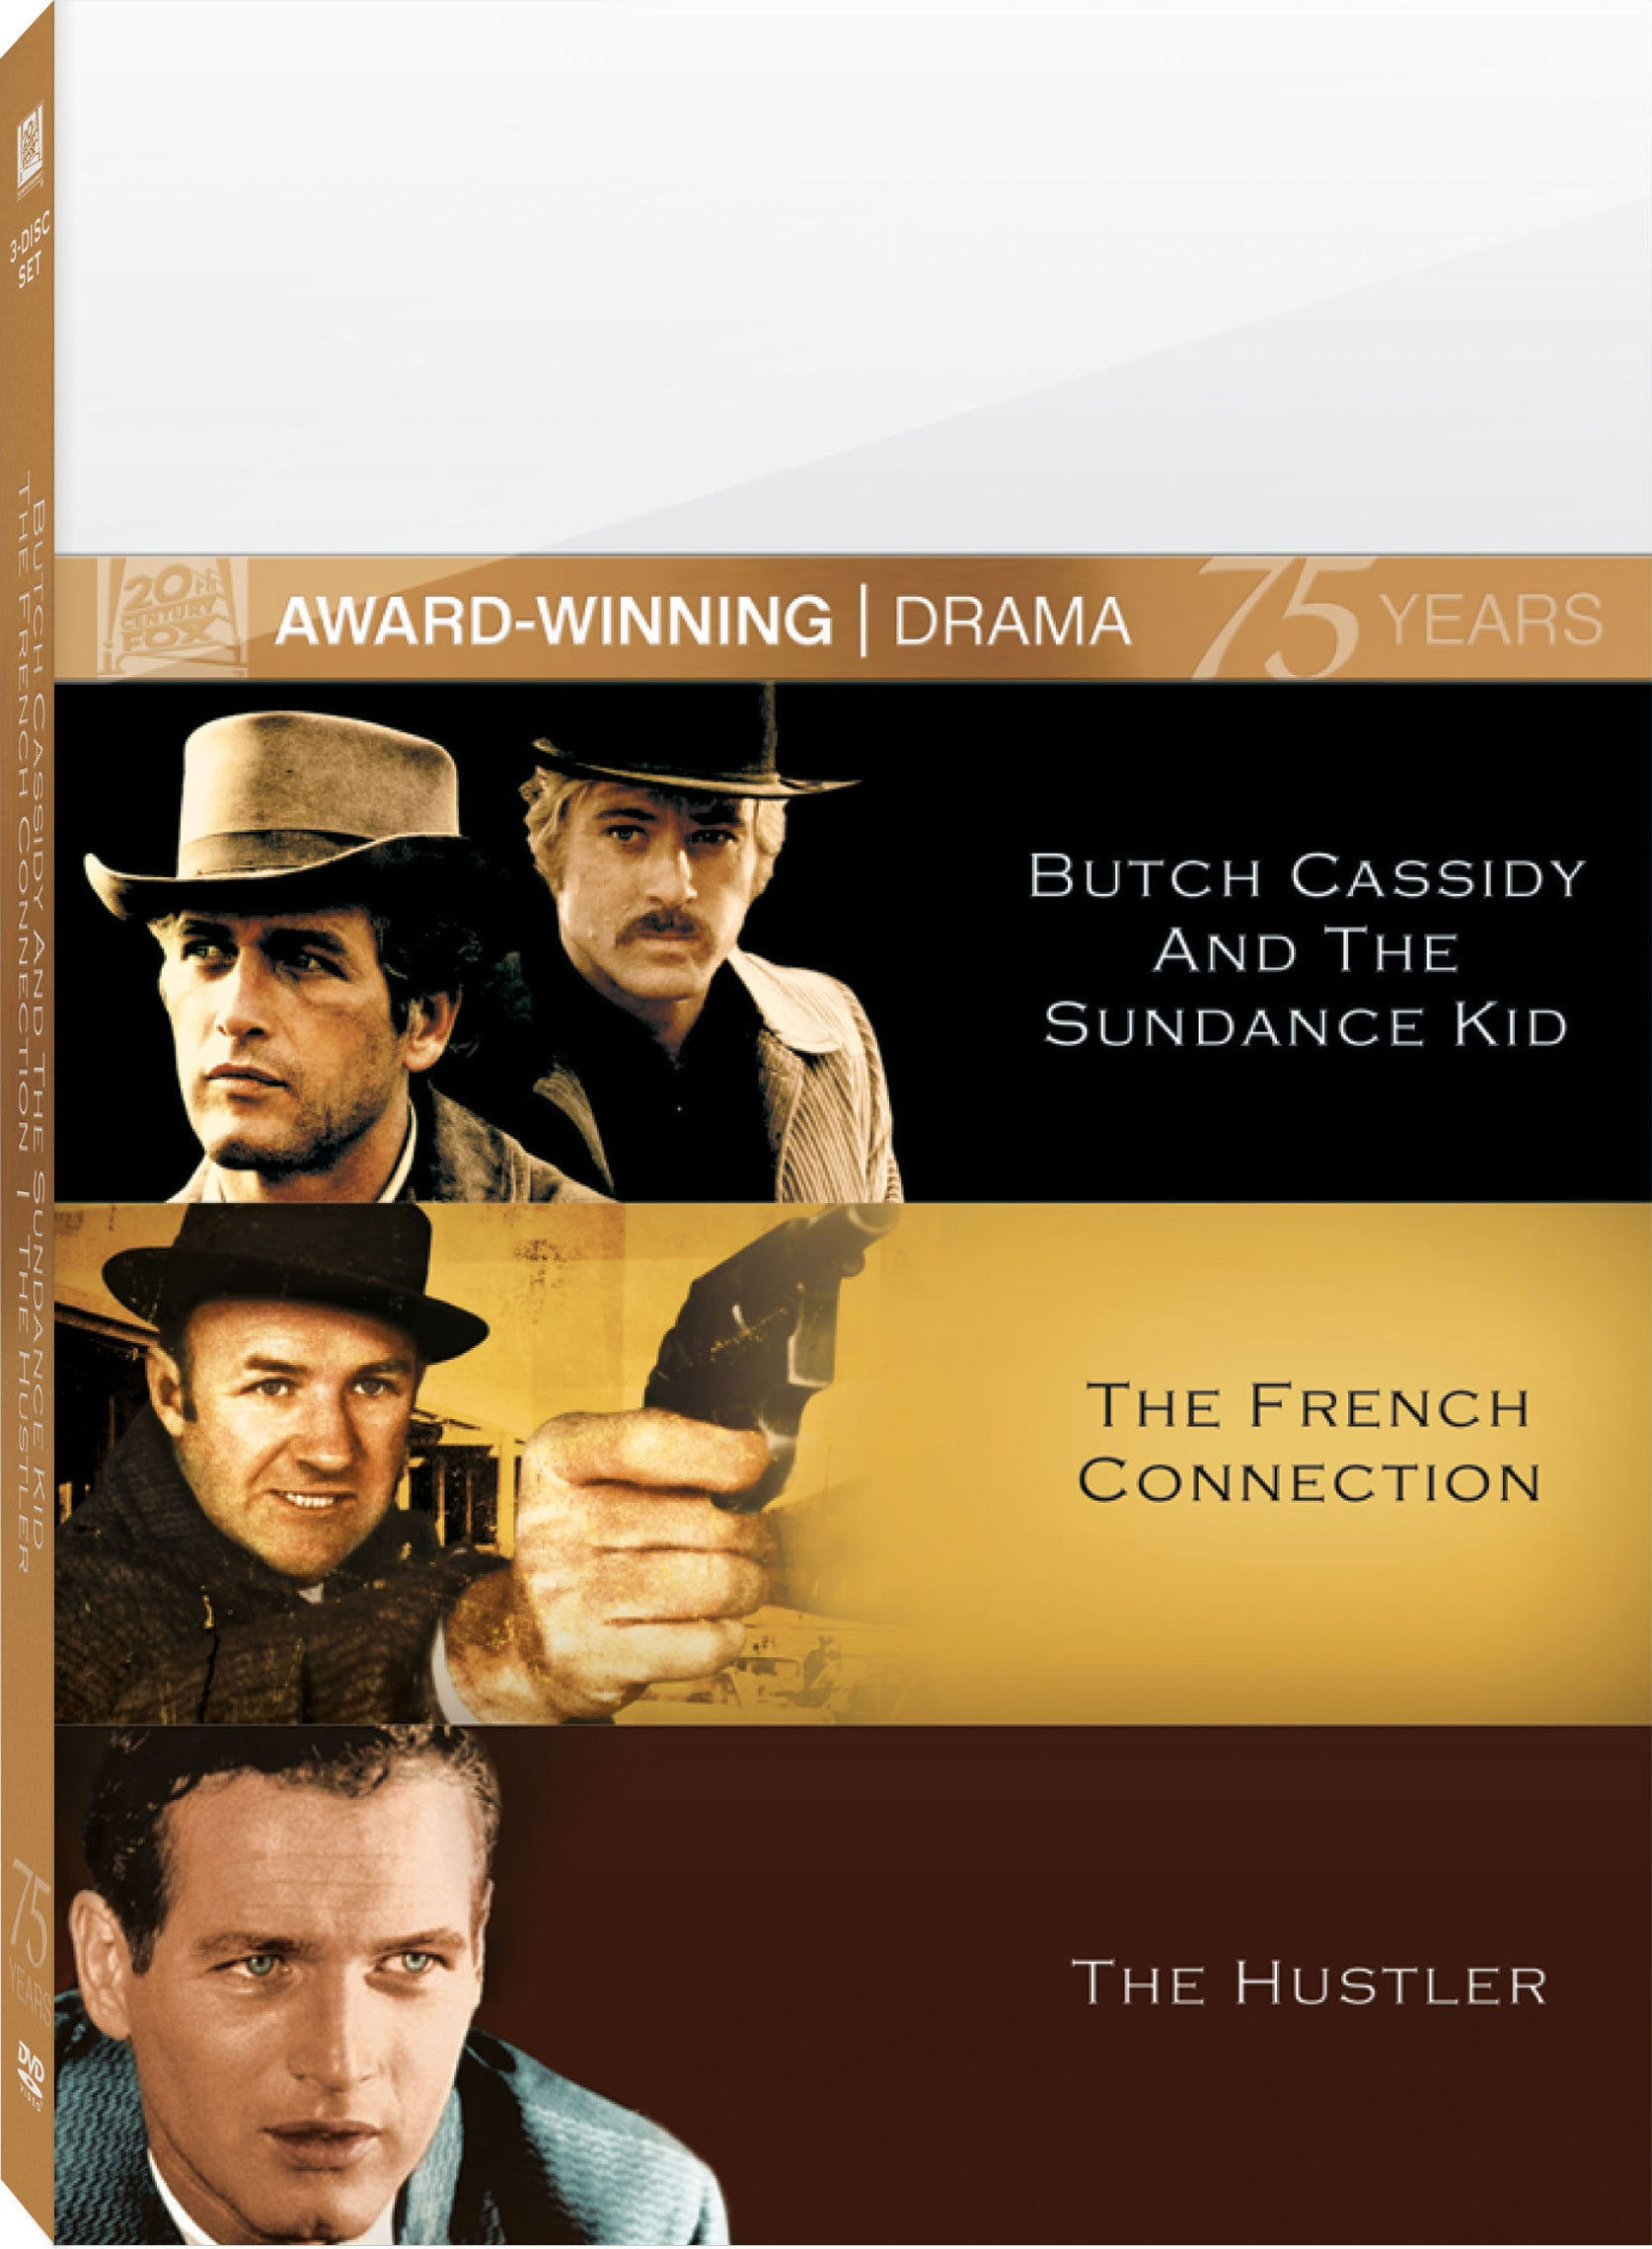 Butch Cassidy And The Sundance Kid/The French Connection/The Hustler (DVD)